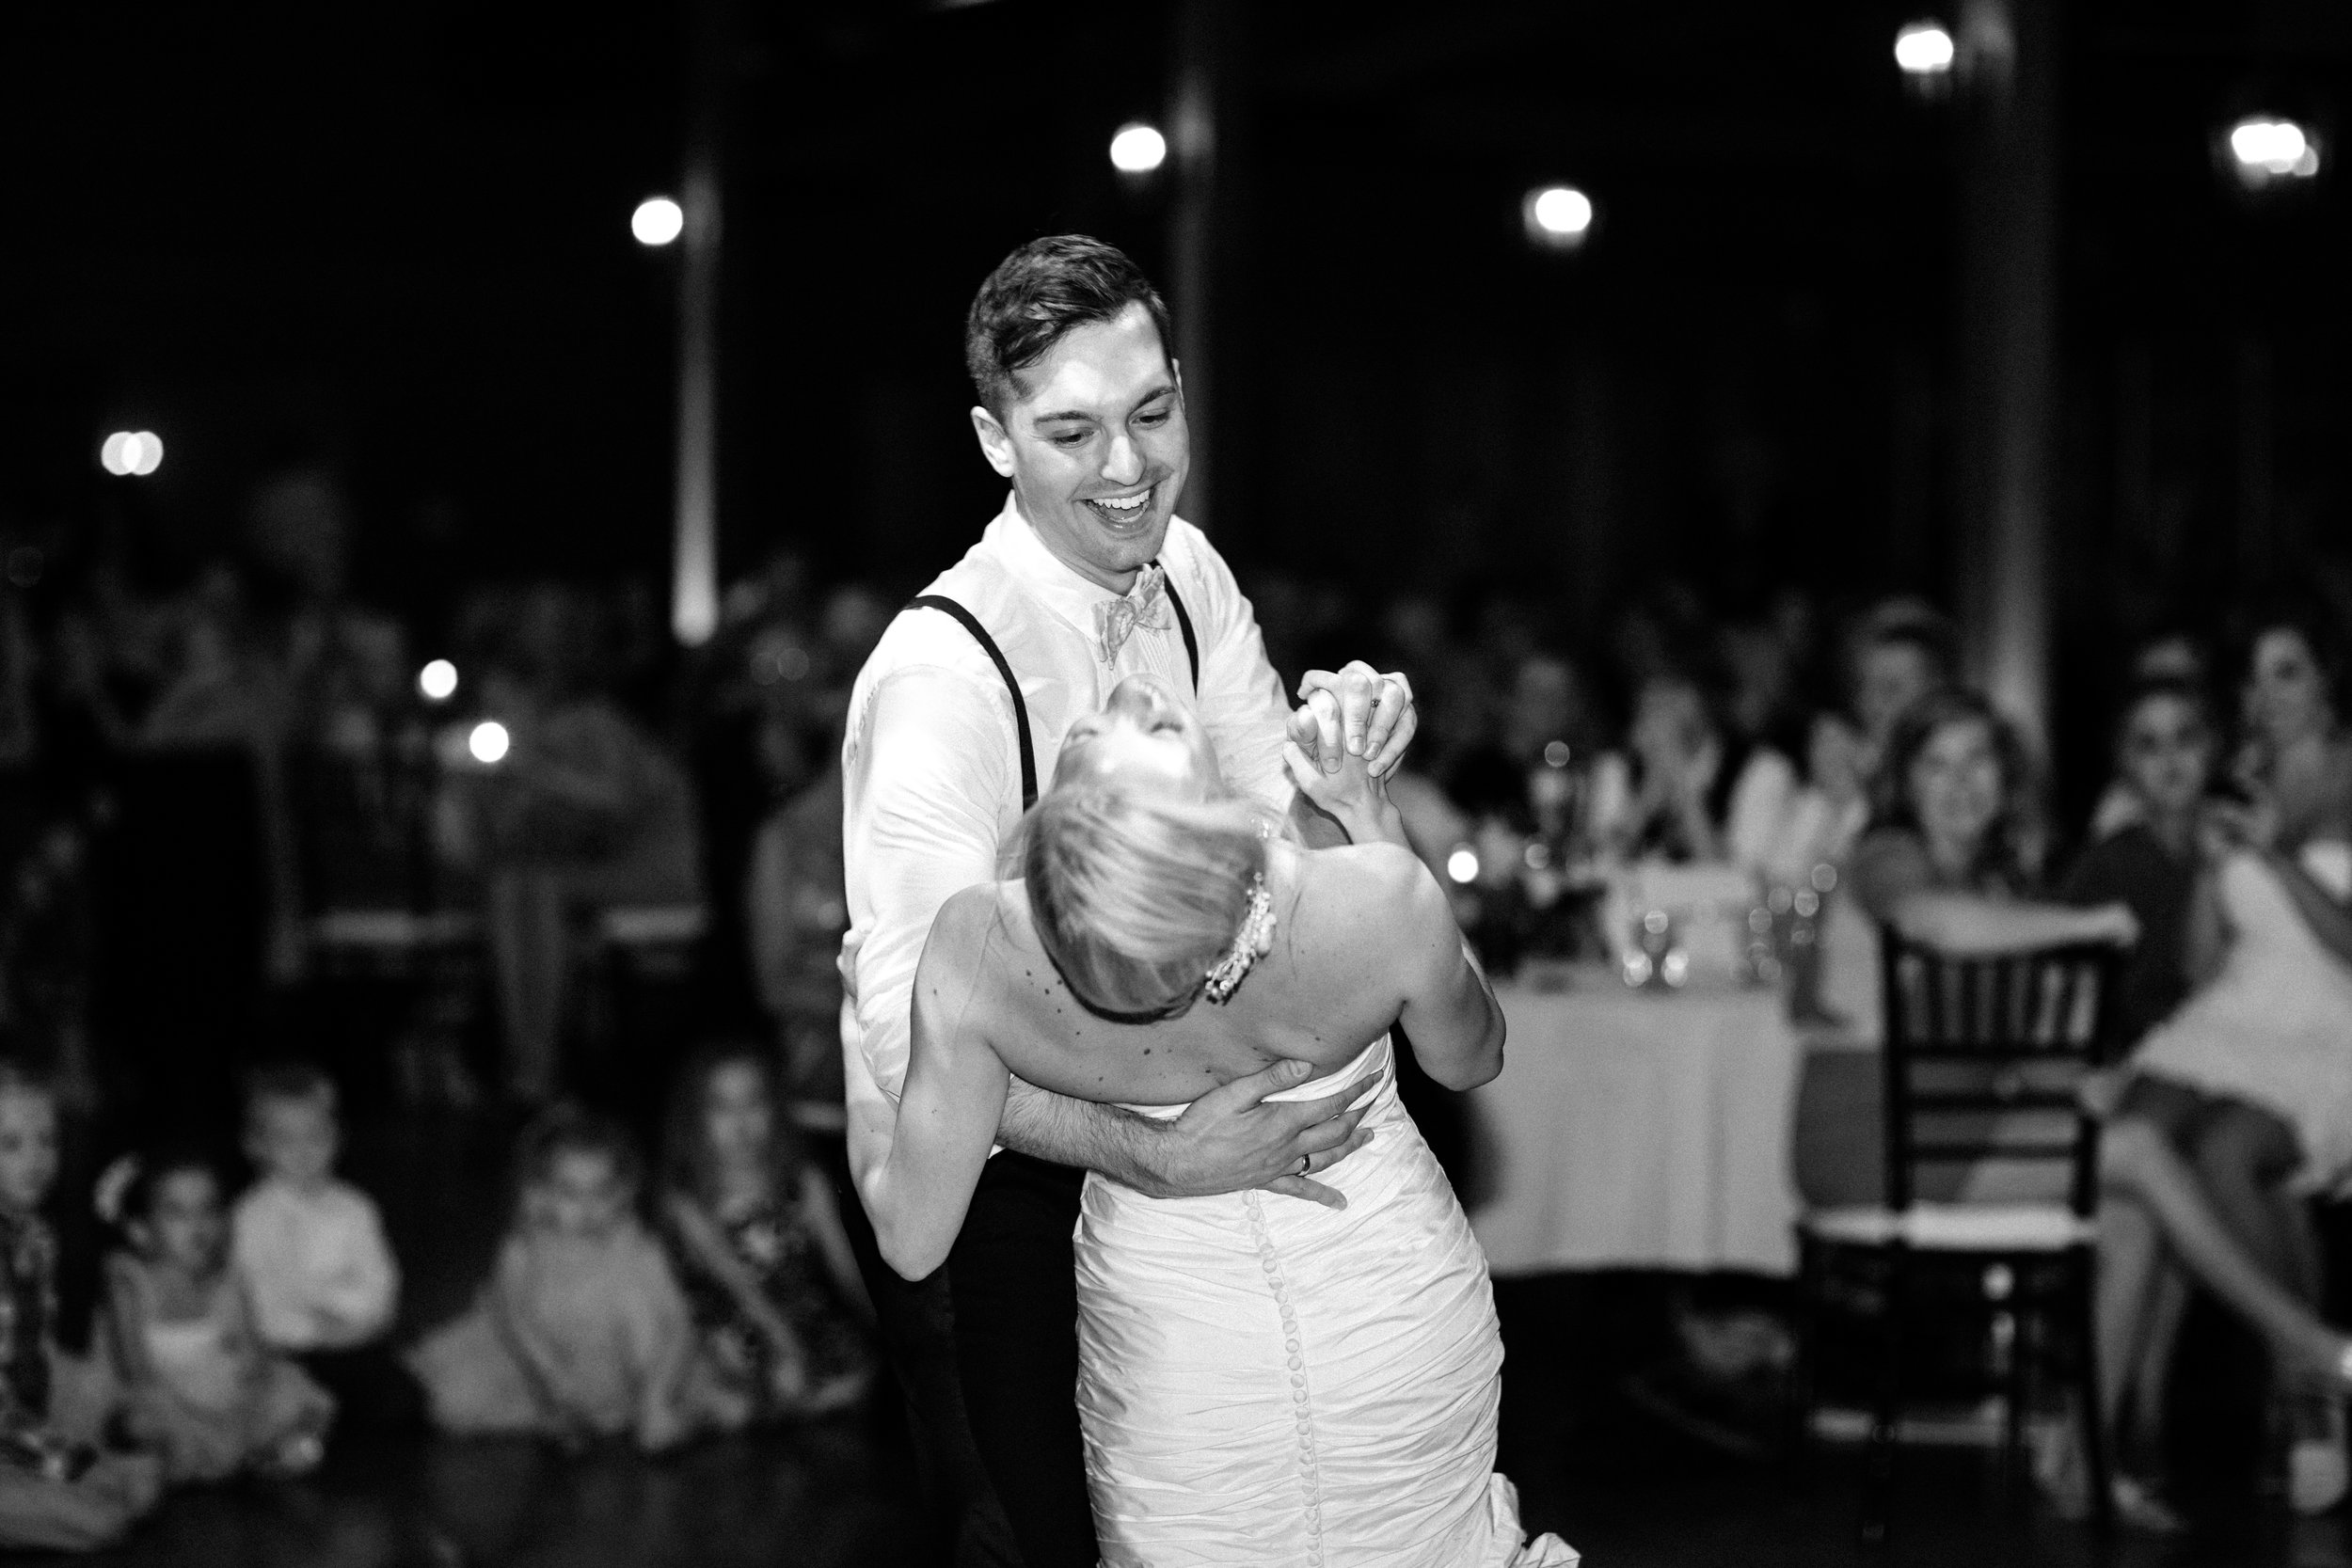 JARED AND CIARA ORCHARD RIDGE PAVILION BRIAN MILO PHOTOGRAPHY (169 of 88).jpg